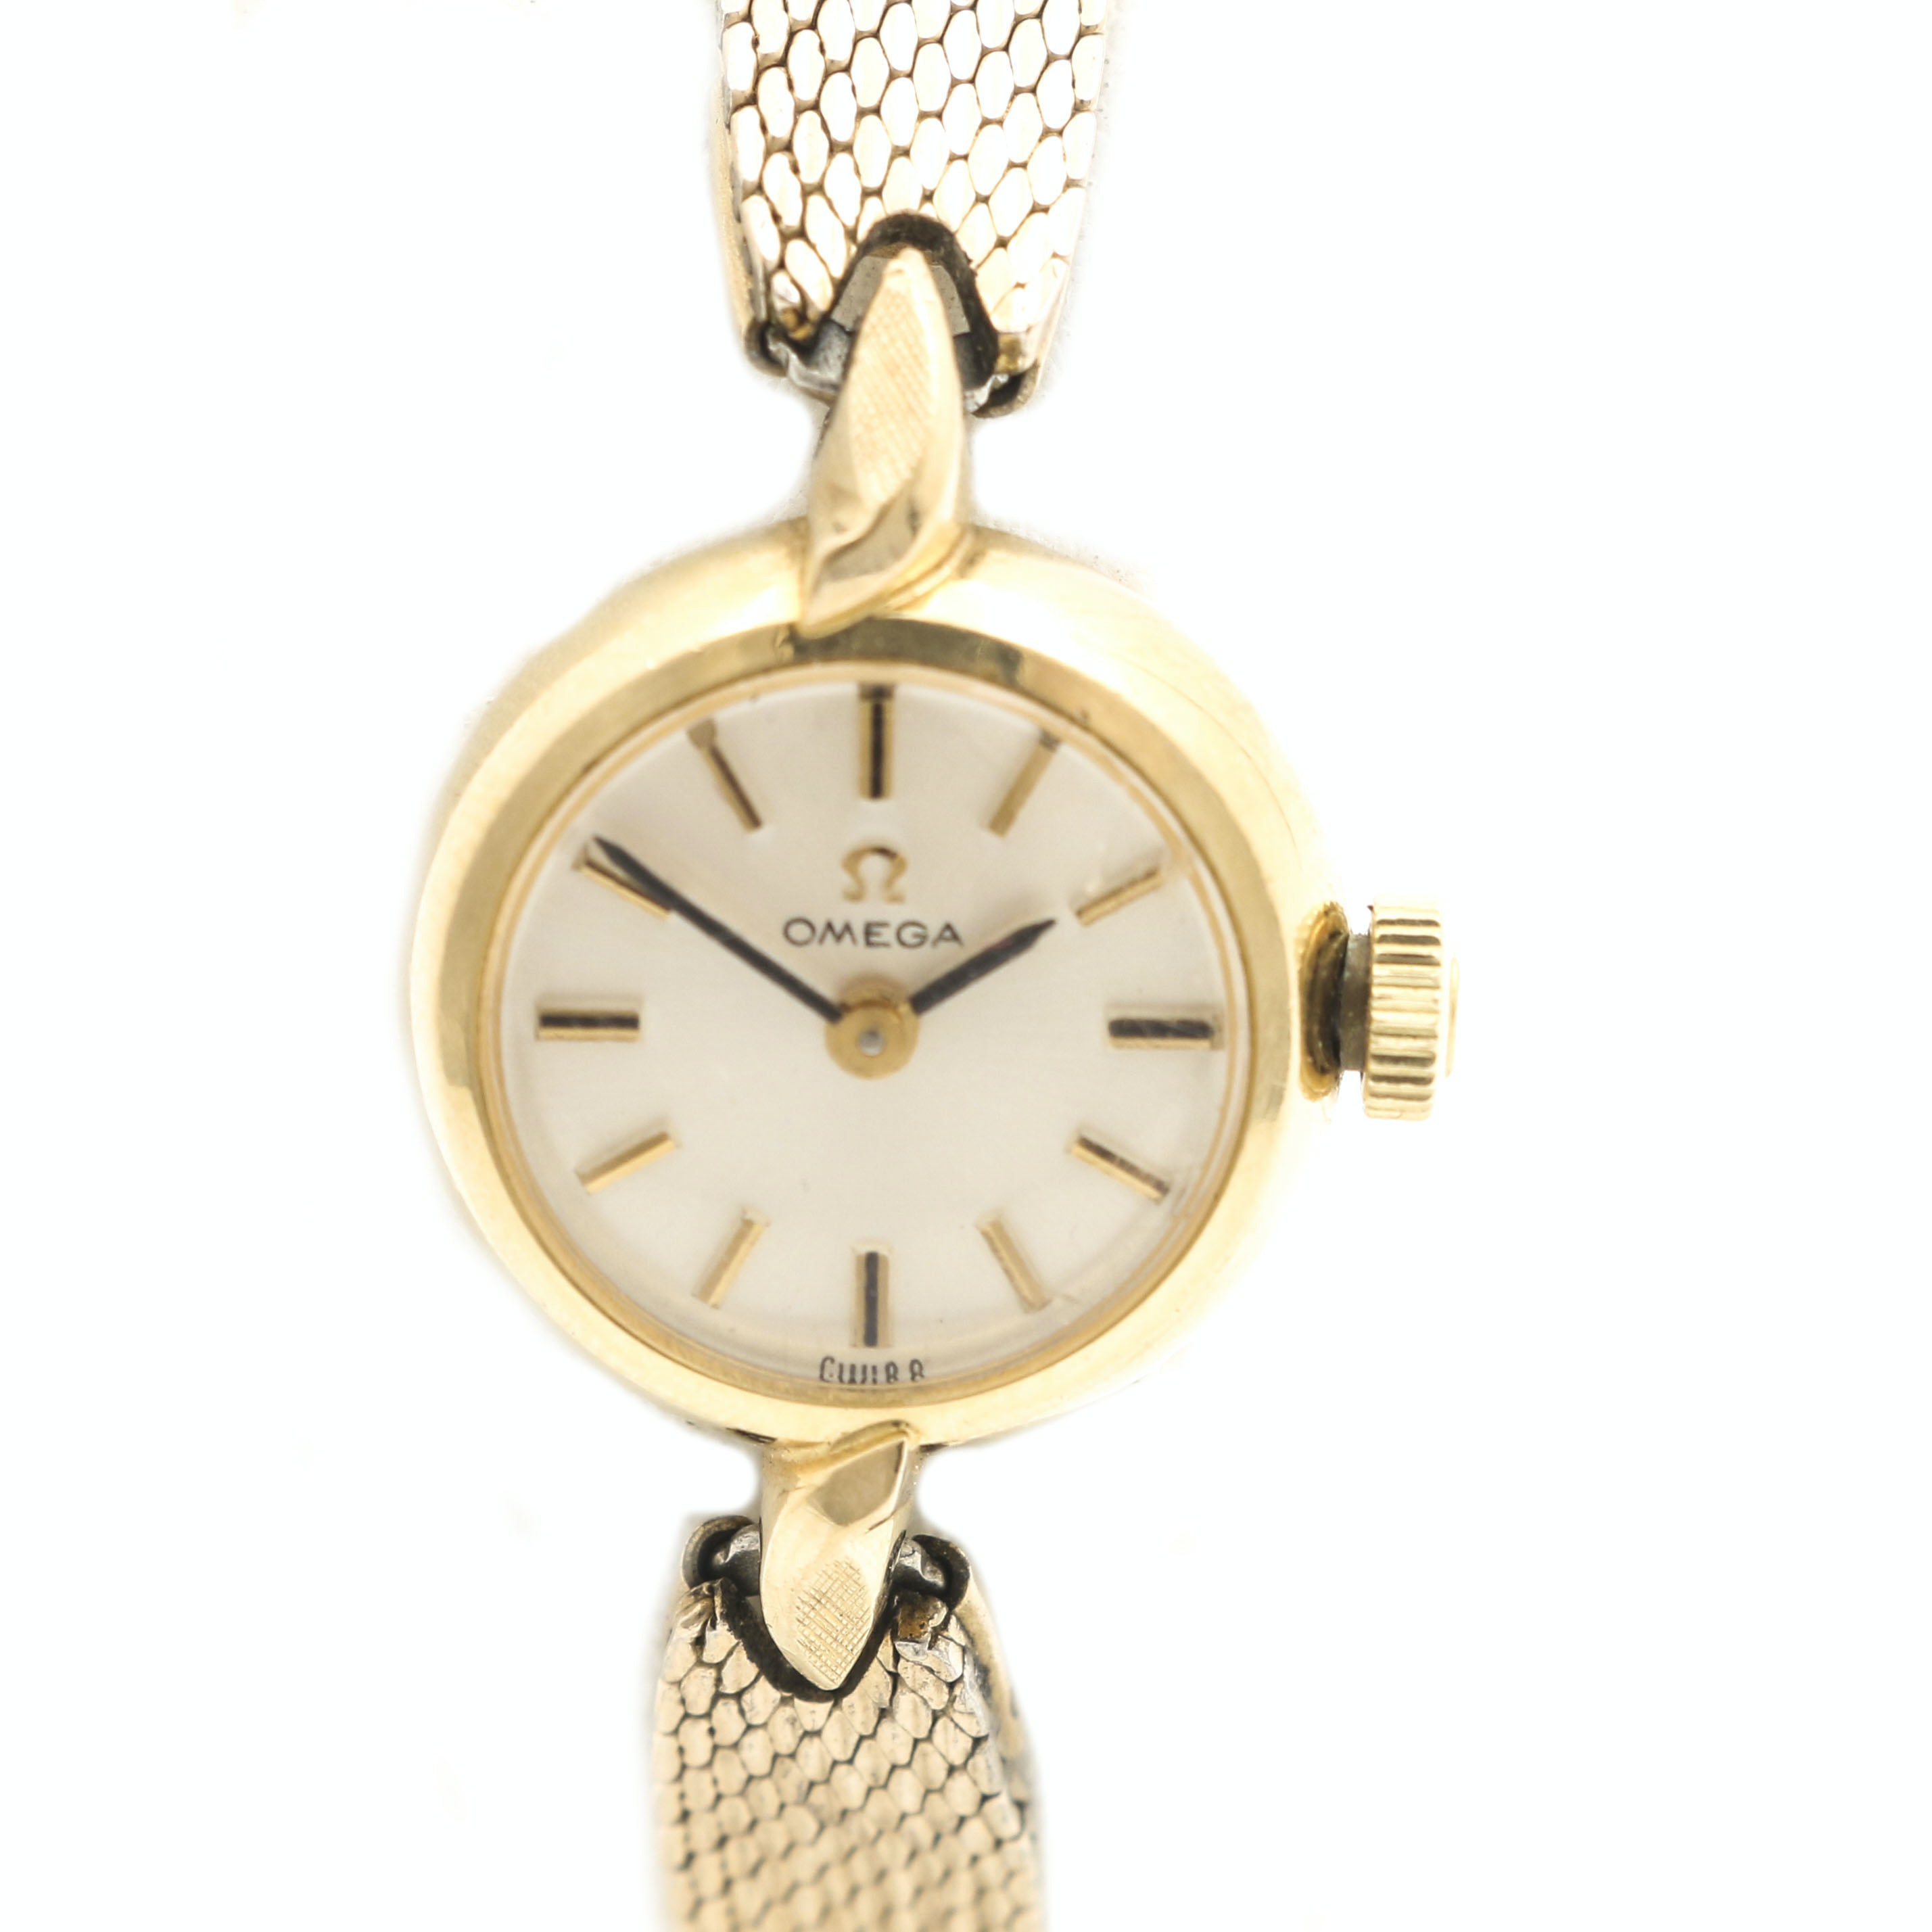 Omega 14K Gold Filled Wristwatch